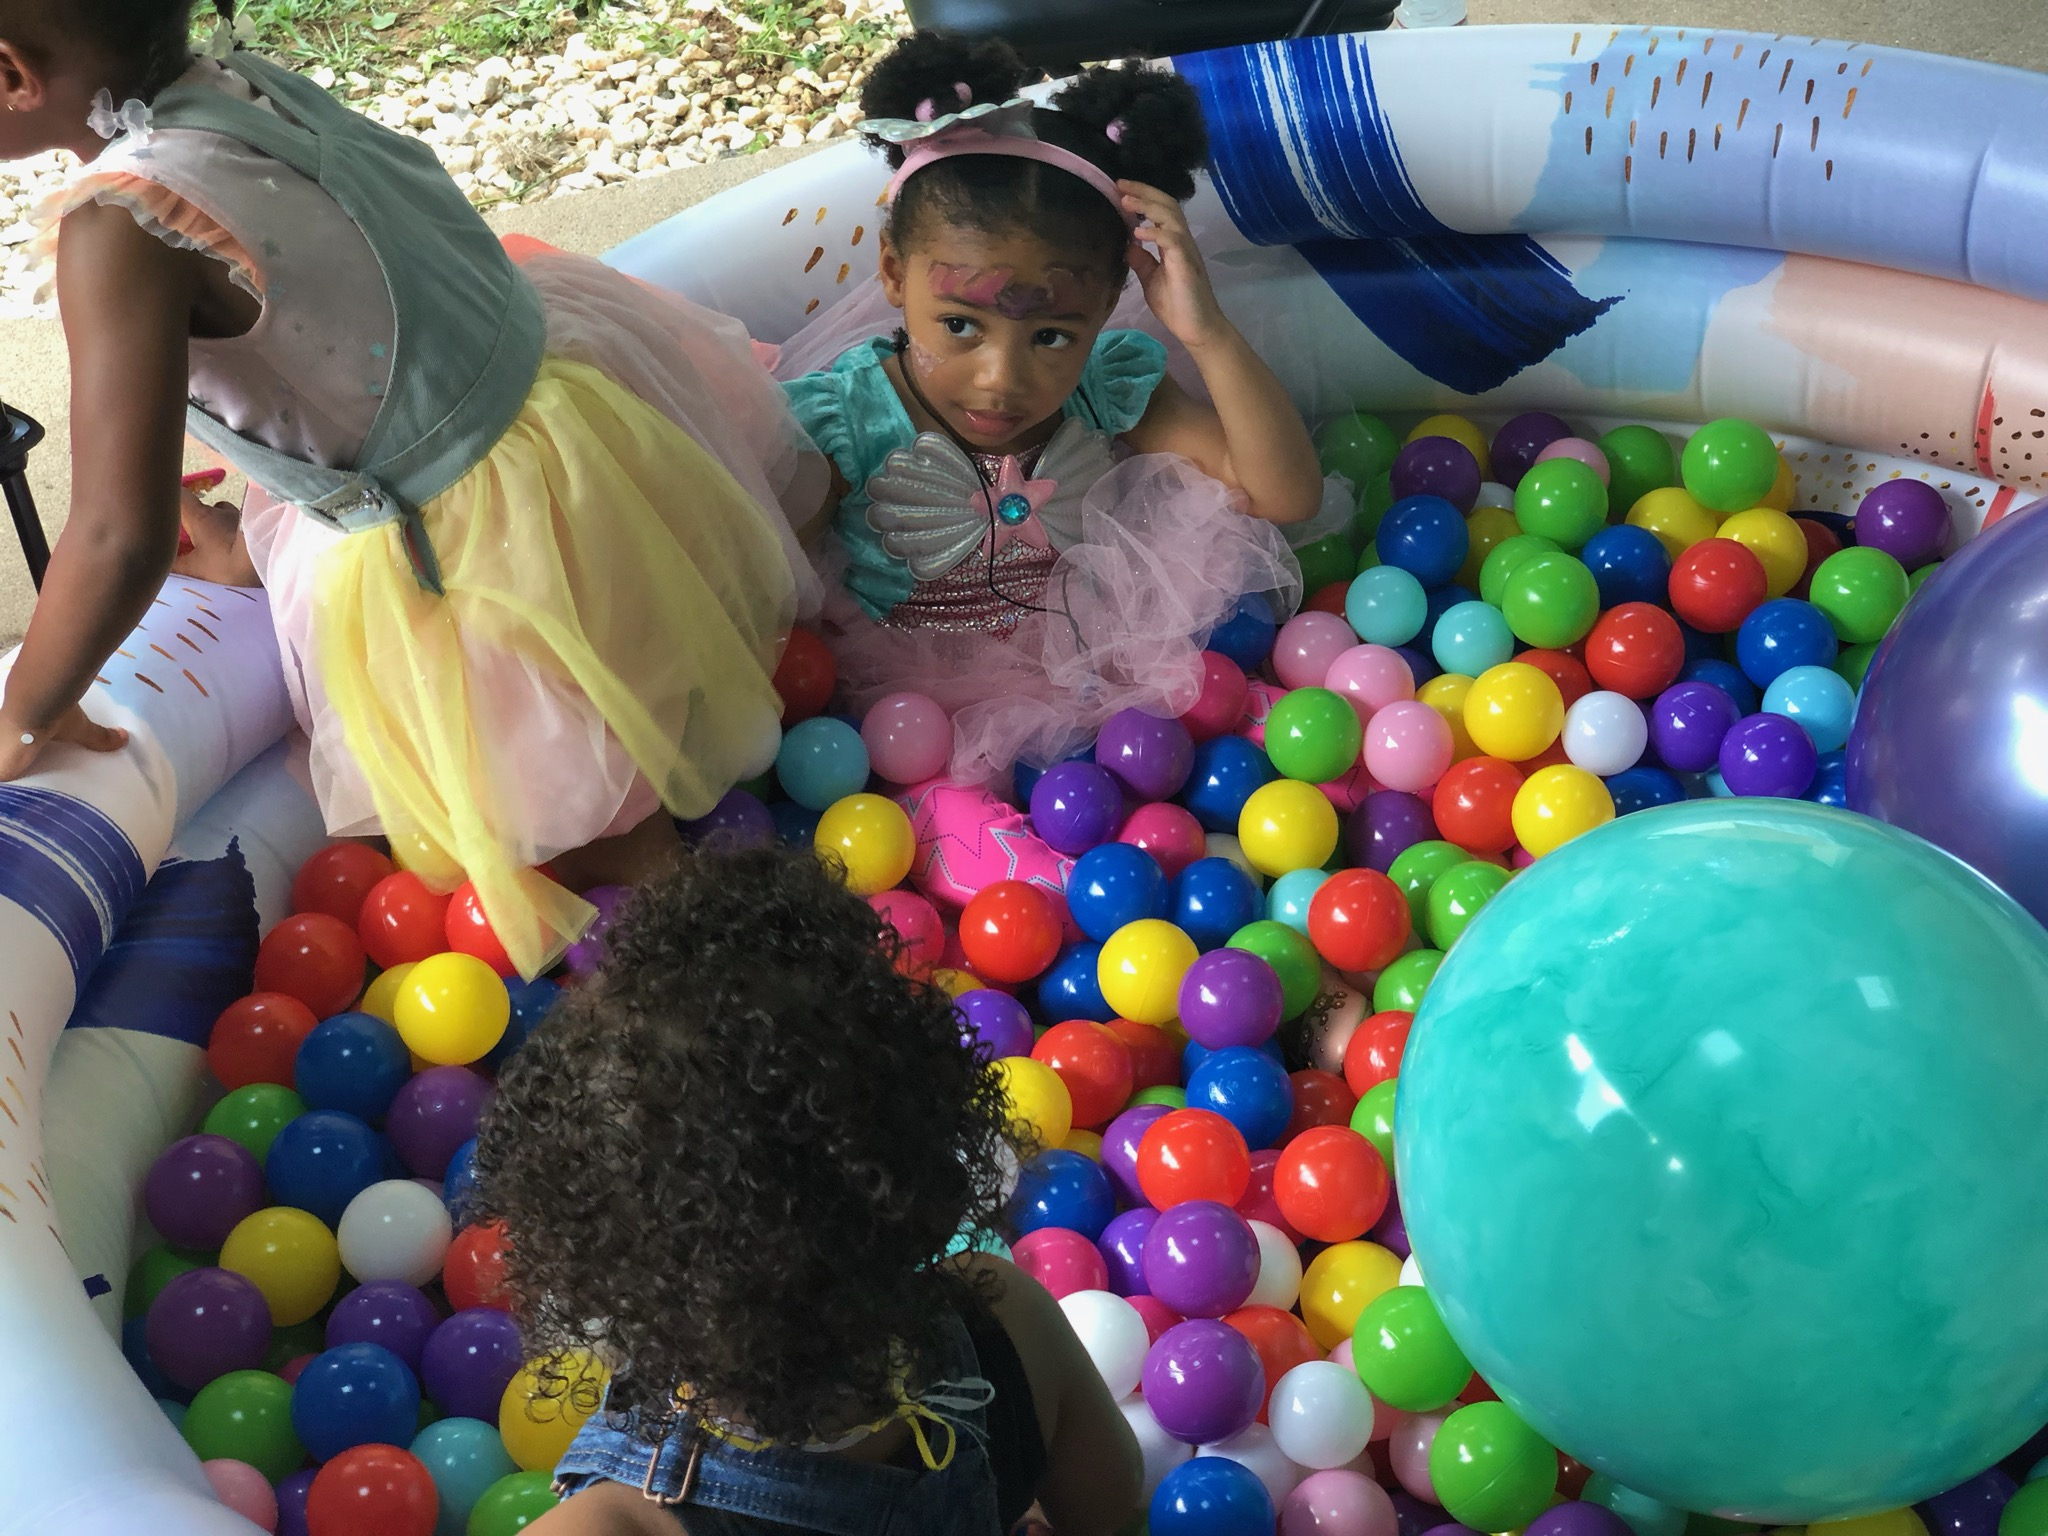 Looking to entertain toddlers? This DIY ball pit might do the trick